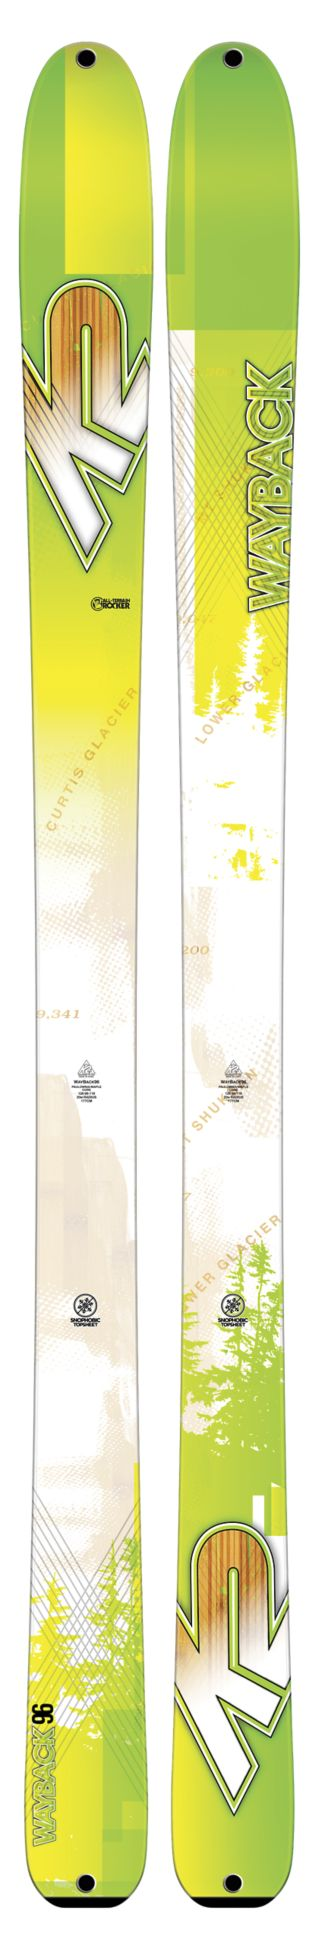 K2 Skis - WayBack 96 Ski